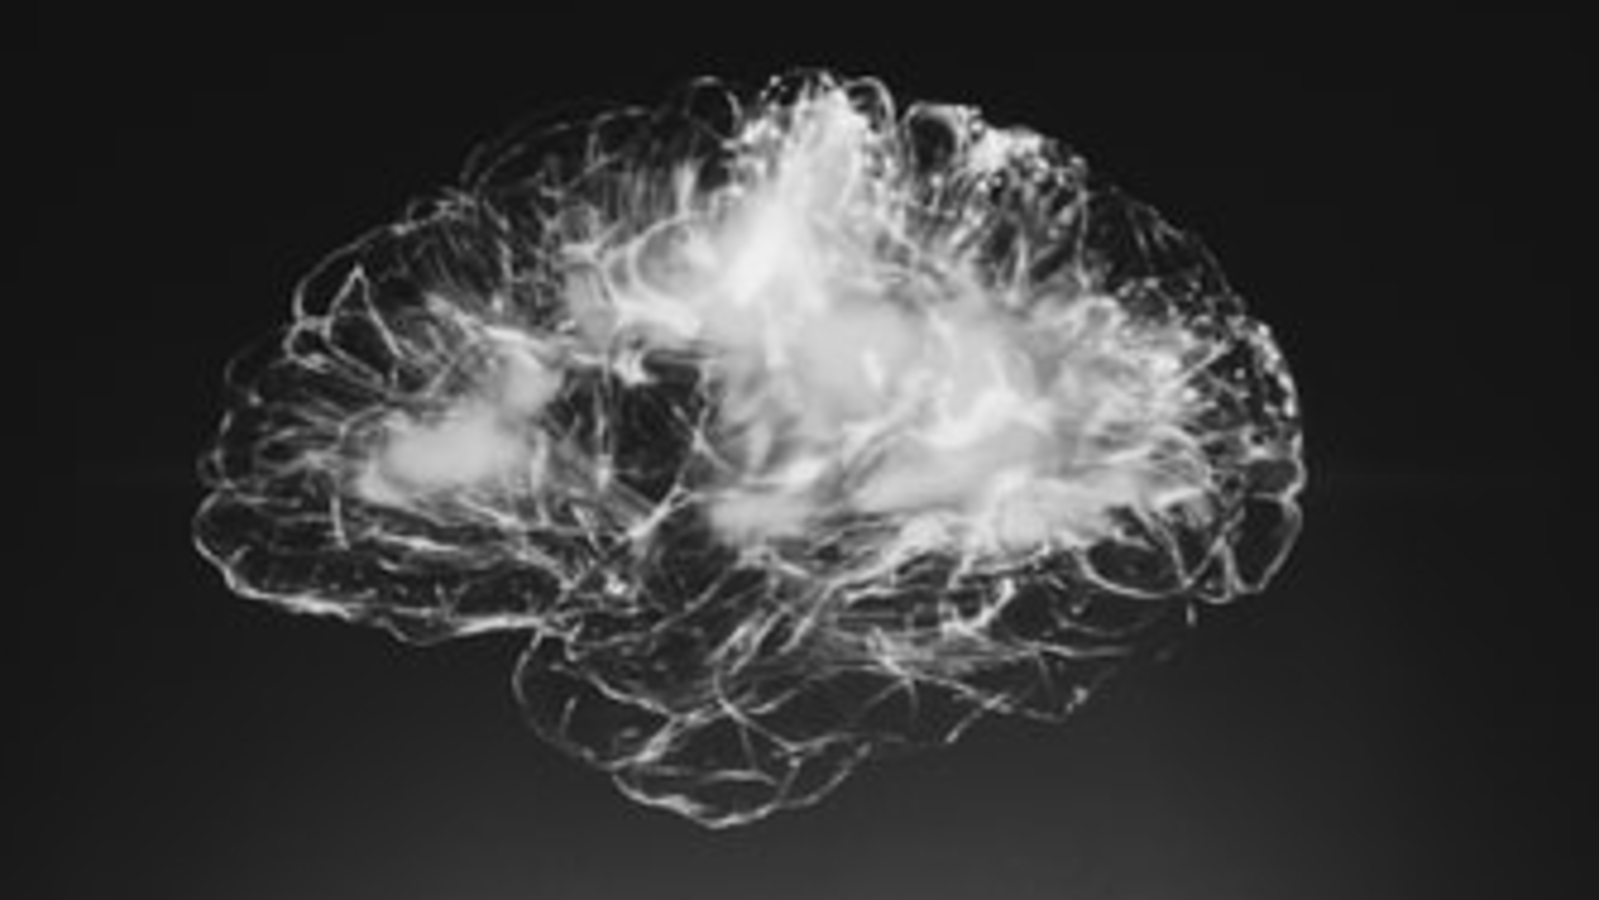 Here's how traumatic brain injuries can increase the risk of stroke by up to 5 years